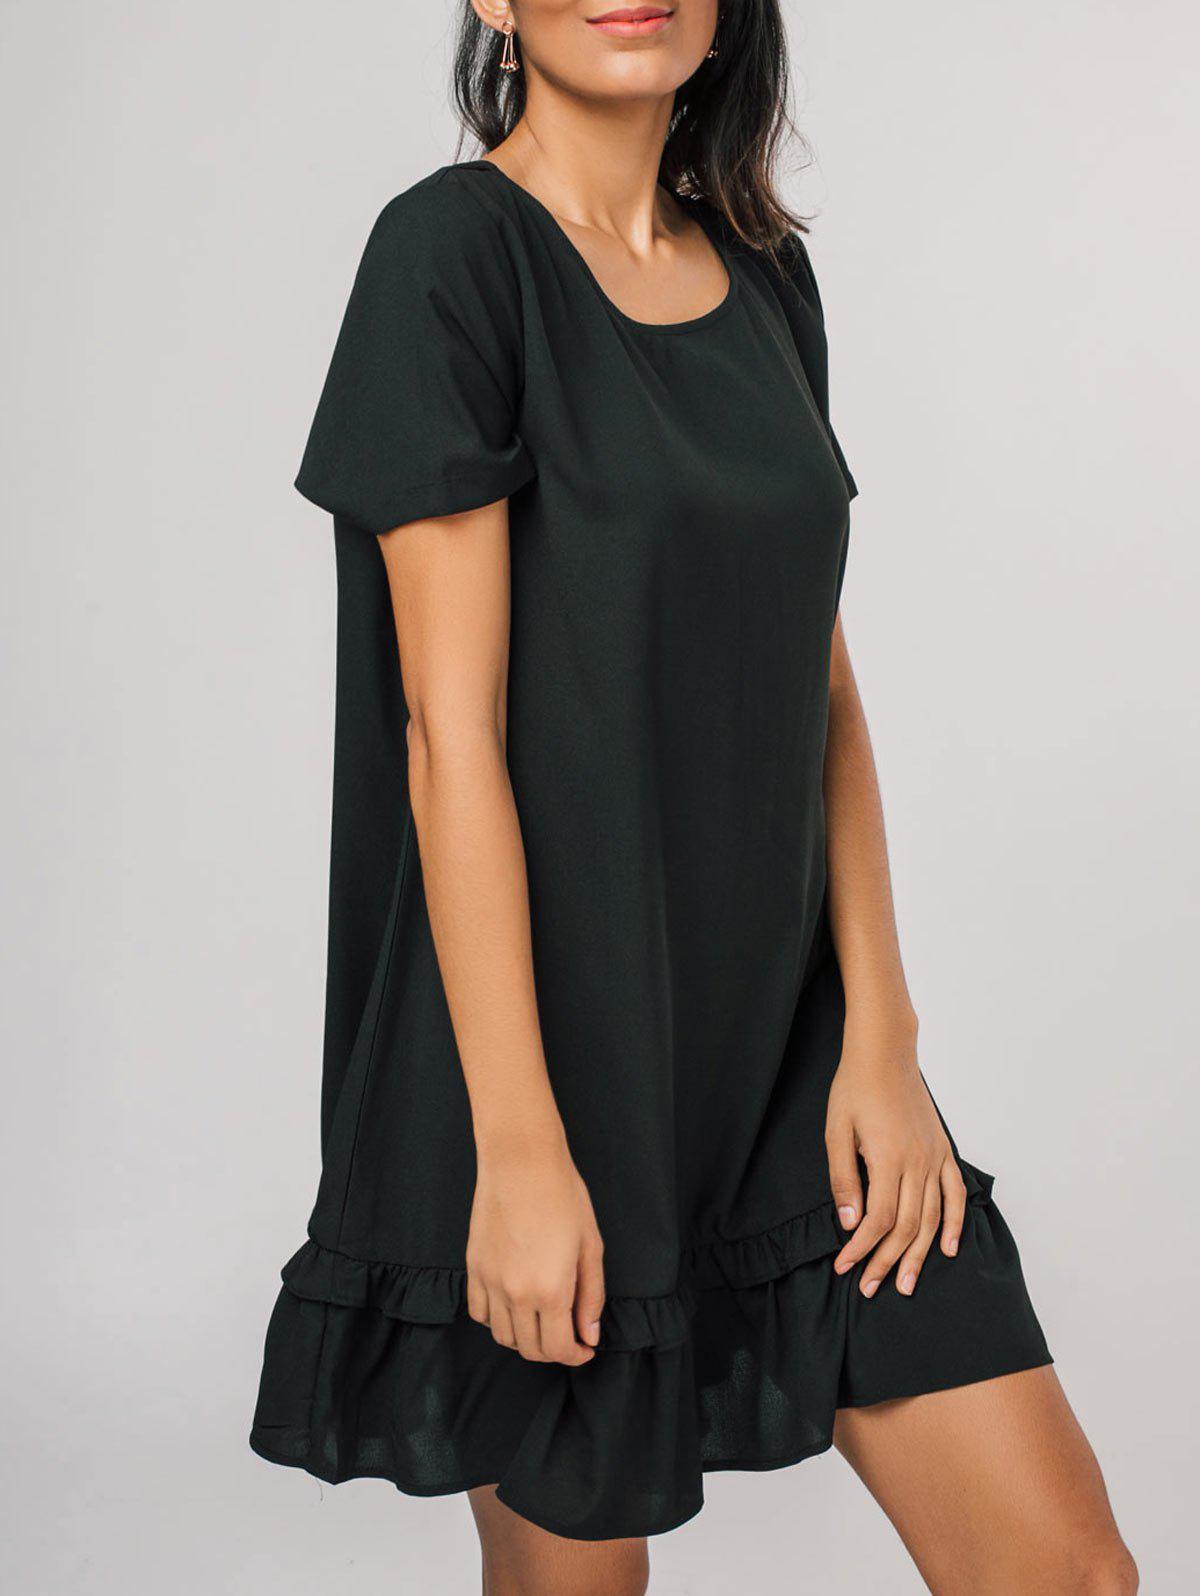 Fancy Flounces Casual Short Sleeve Mini Dress